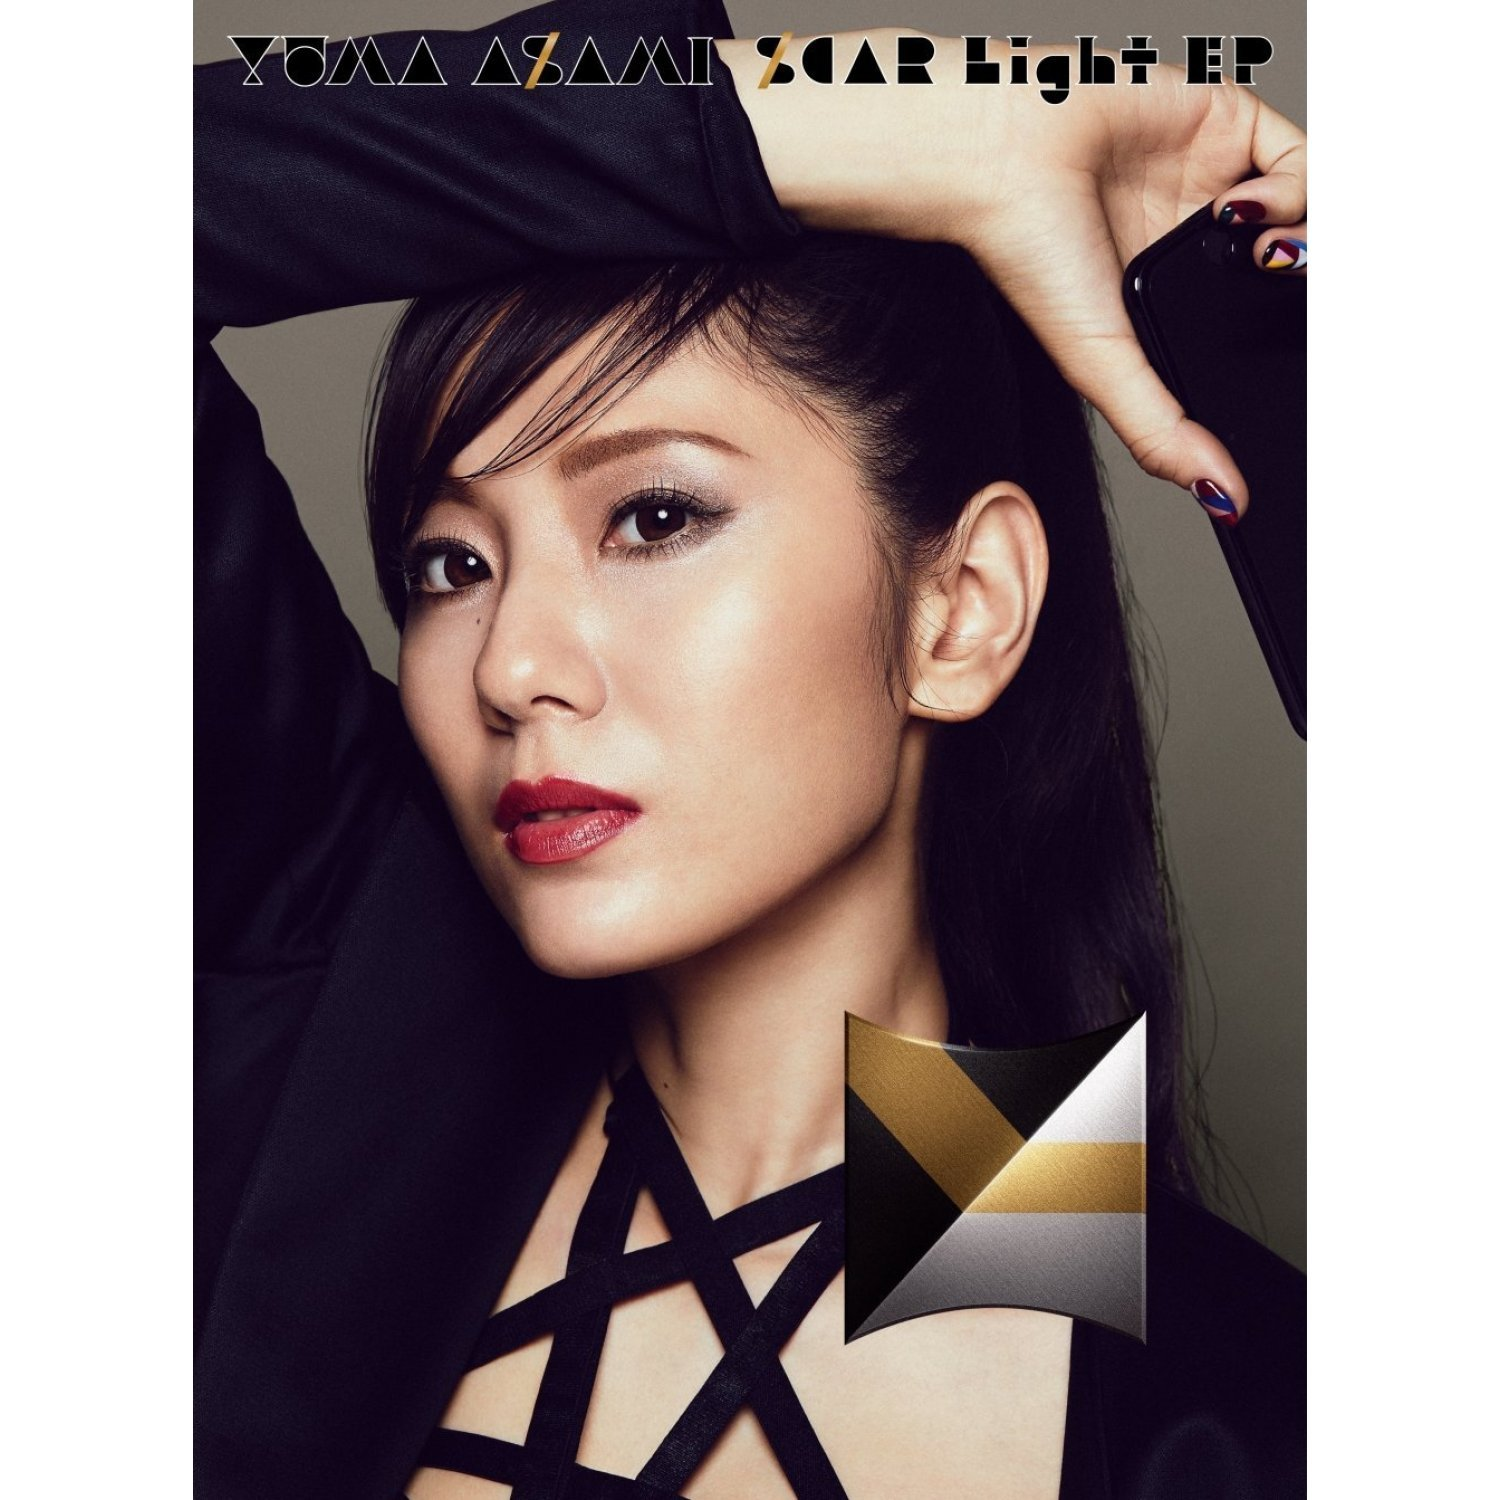 j-pop - scar light ep [cd+dvd limited edition] (yuma asami)